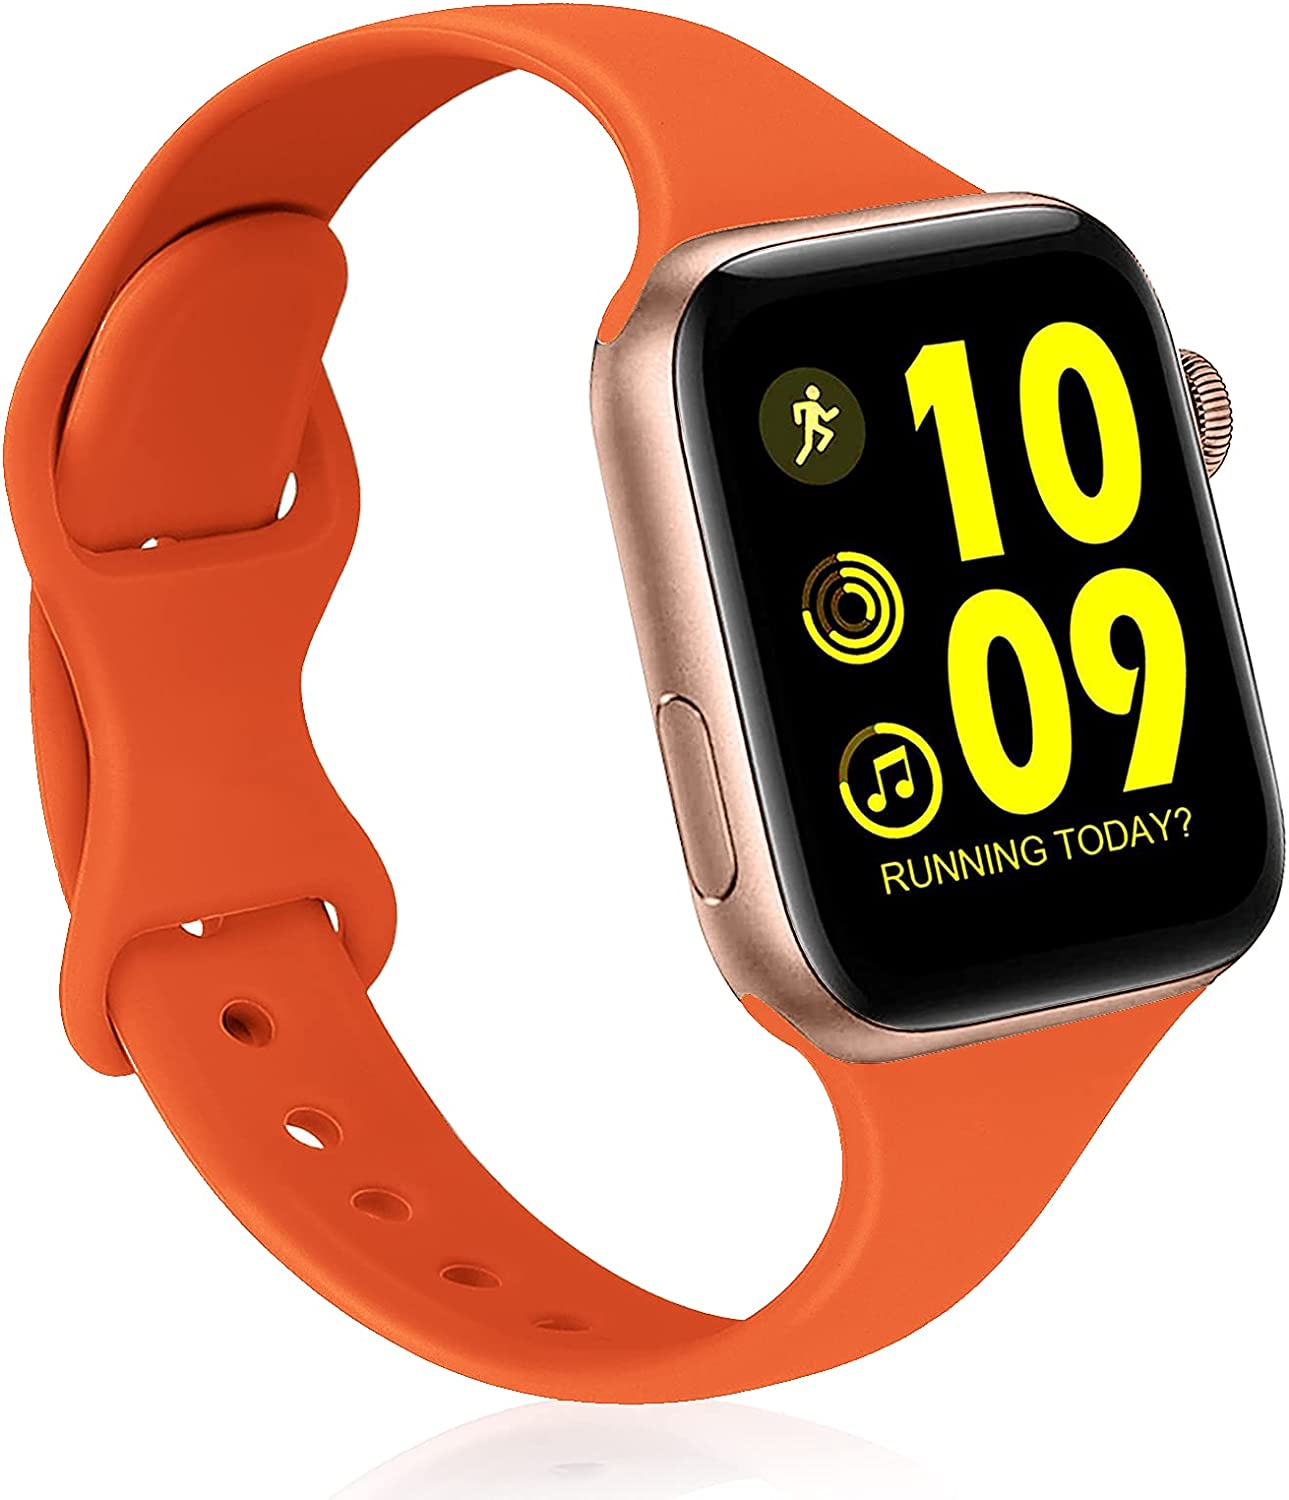 AIRPROEC Sport Bands Compatible with Apple Watch Band 38mm 40mm 42mm 44mm Slim Thin Skinny Narrow Silicone Replacement Strap Wristband for iWatch Series 6/5/4/3/2/1/SE Women Men